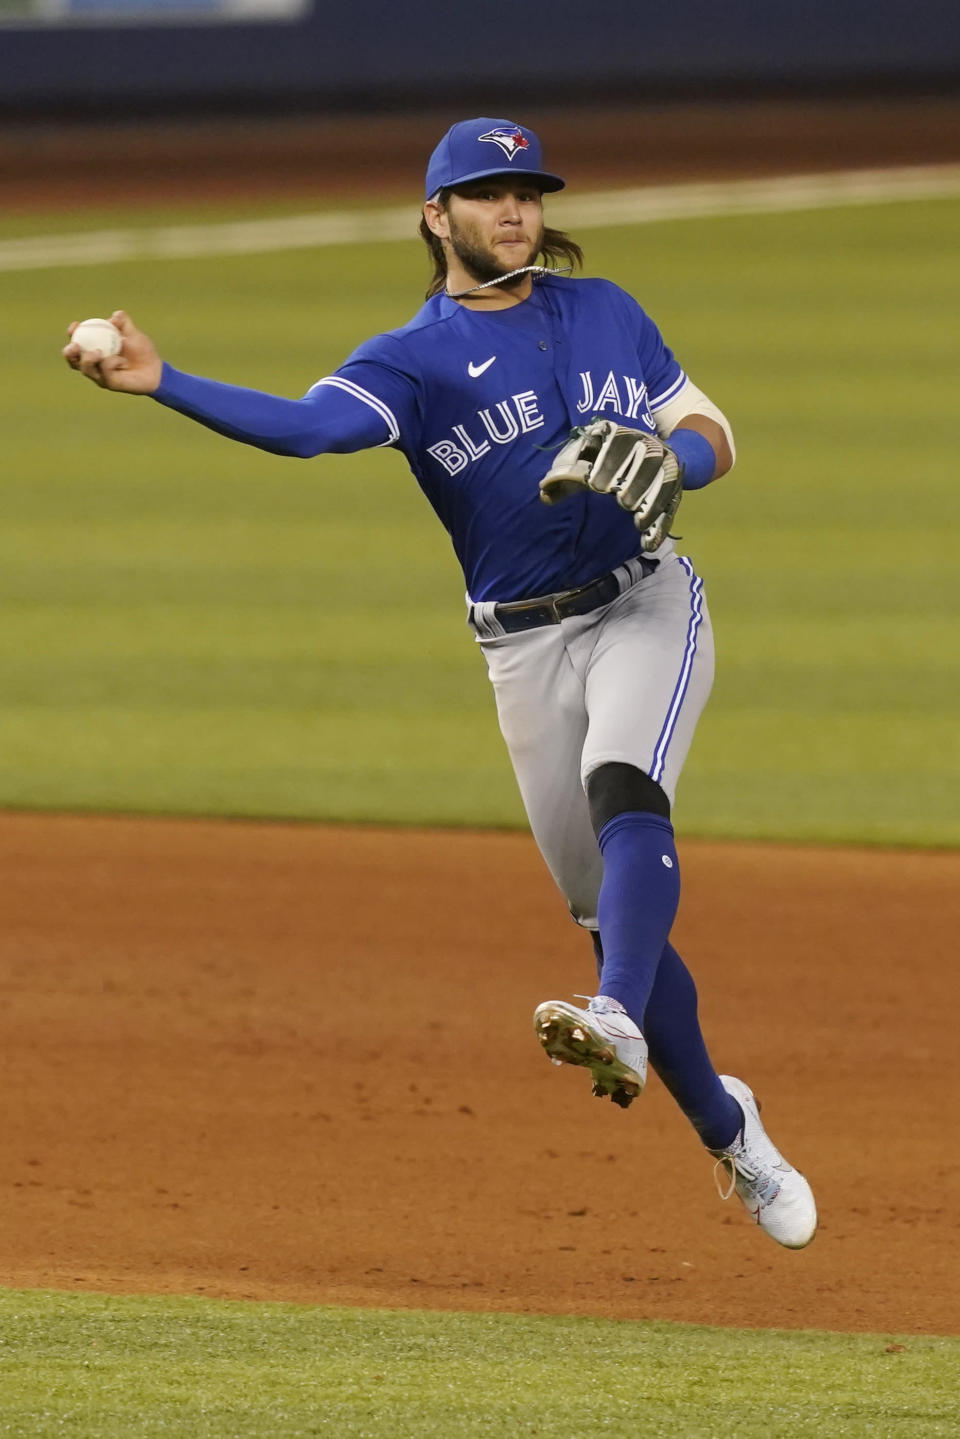 Toronto Blue Jays shortstop Bo Bichette (11) throws to first base on a hit by Miami Marlins' Starling Marte during the ninth inning of a baseball game, Tuesday, June 22, 2021, in Miami. The Blue Jays defeated the Marlins 2-1. (AP Photo/Marta Lavandier)